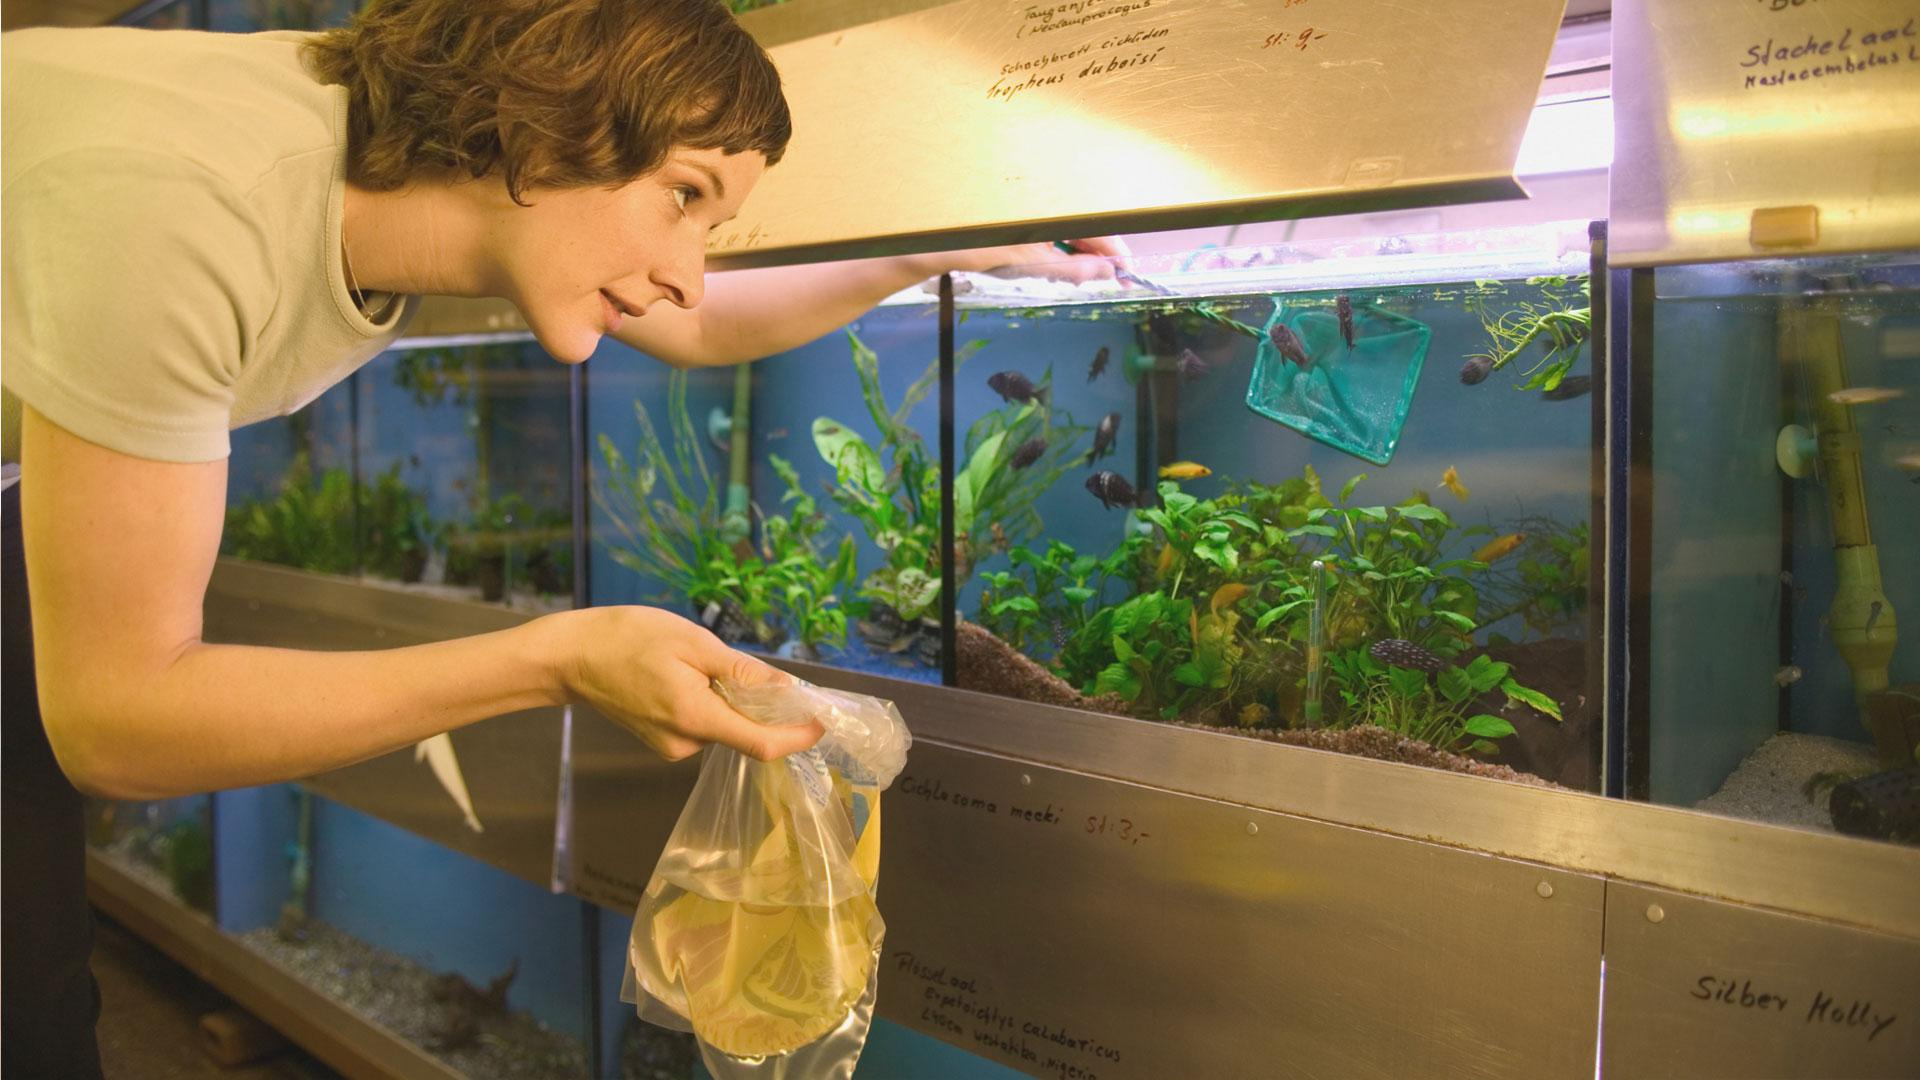 How to choose a freshwater fish as a pet